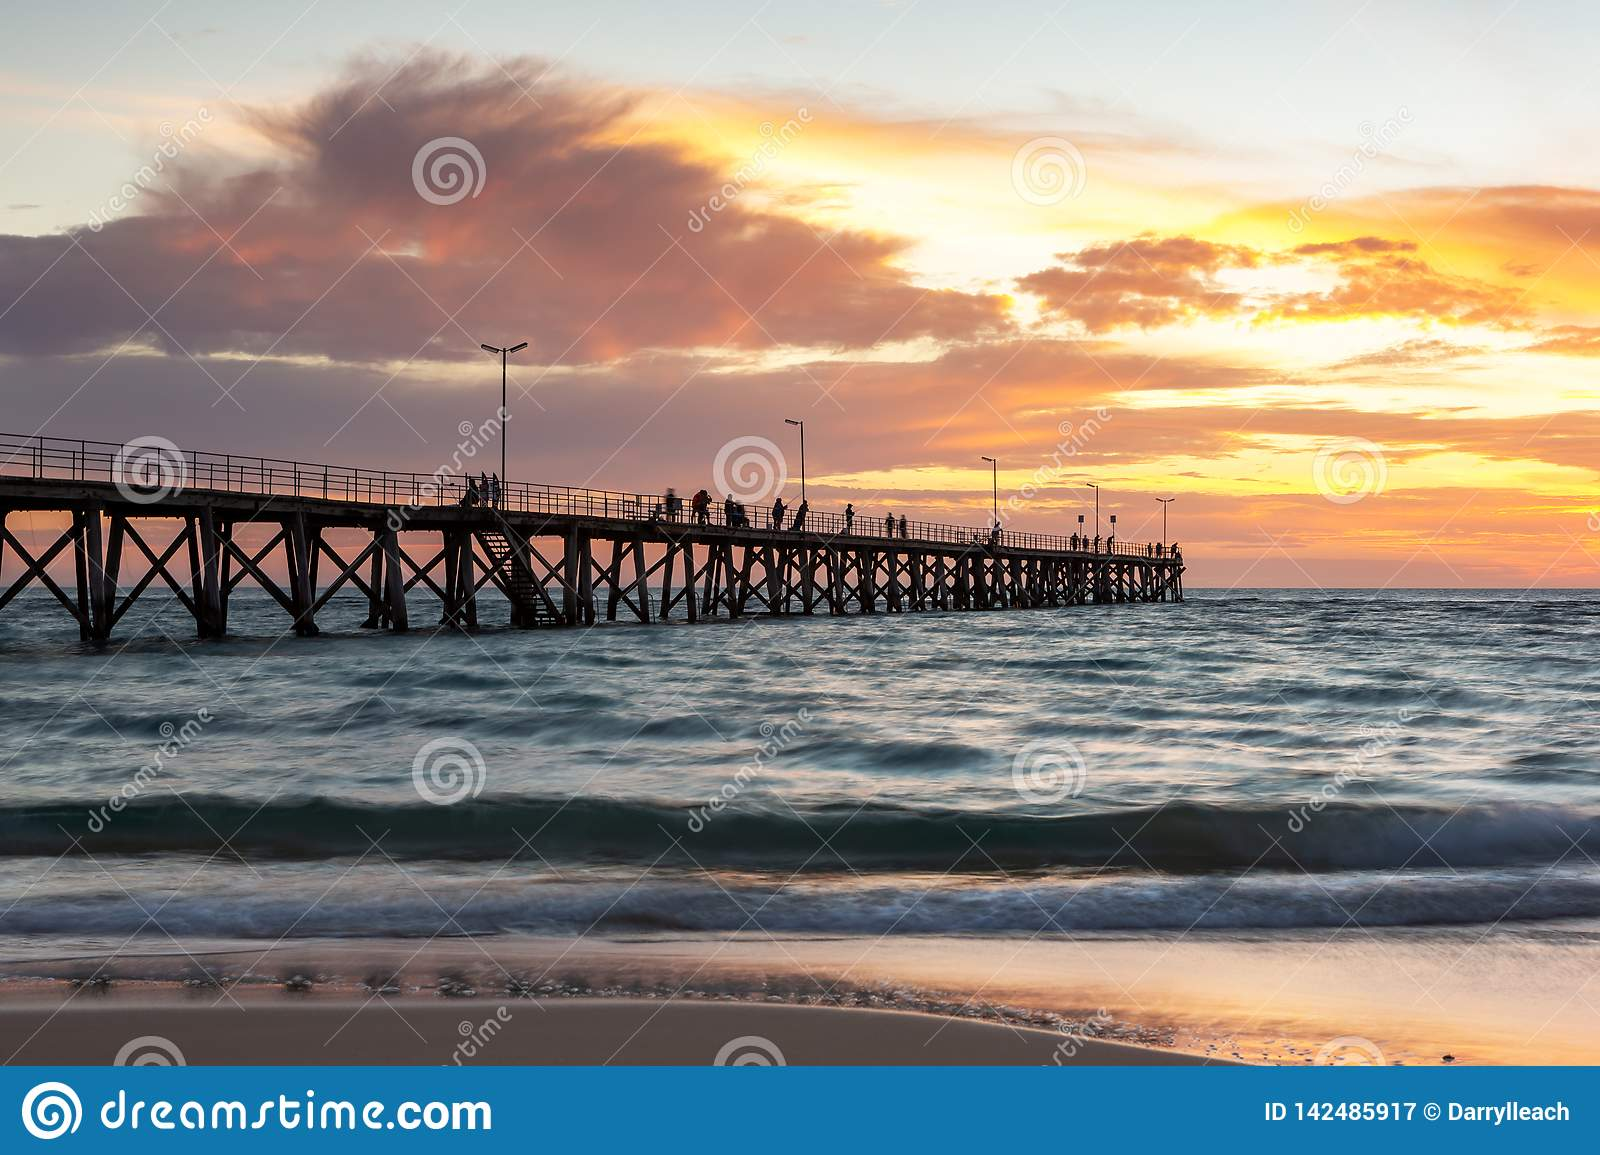 A beautiful sunset at Port Noarlunga with the jetty and motion blur on the water at Port Noarlunga South Australia on 18th March